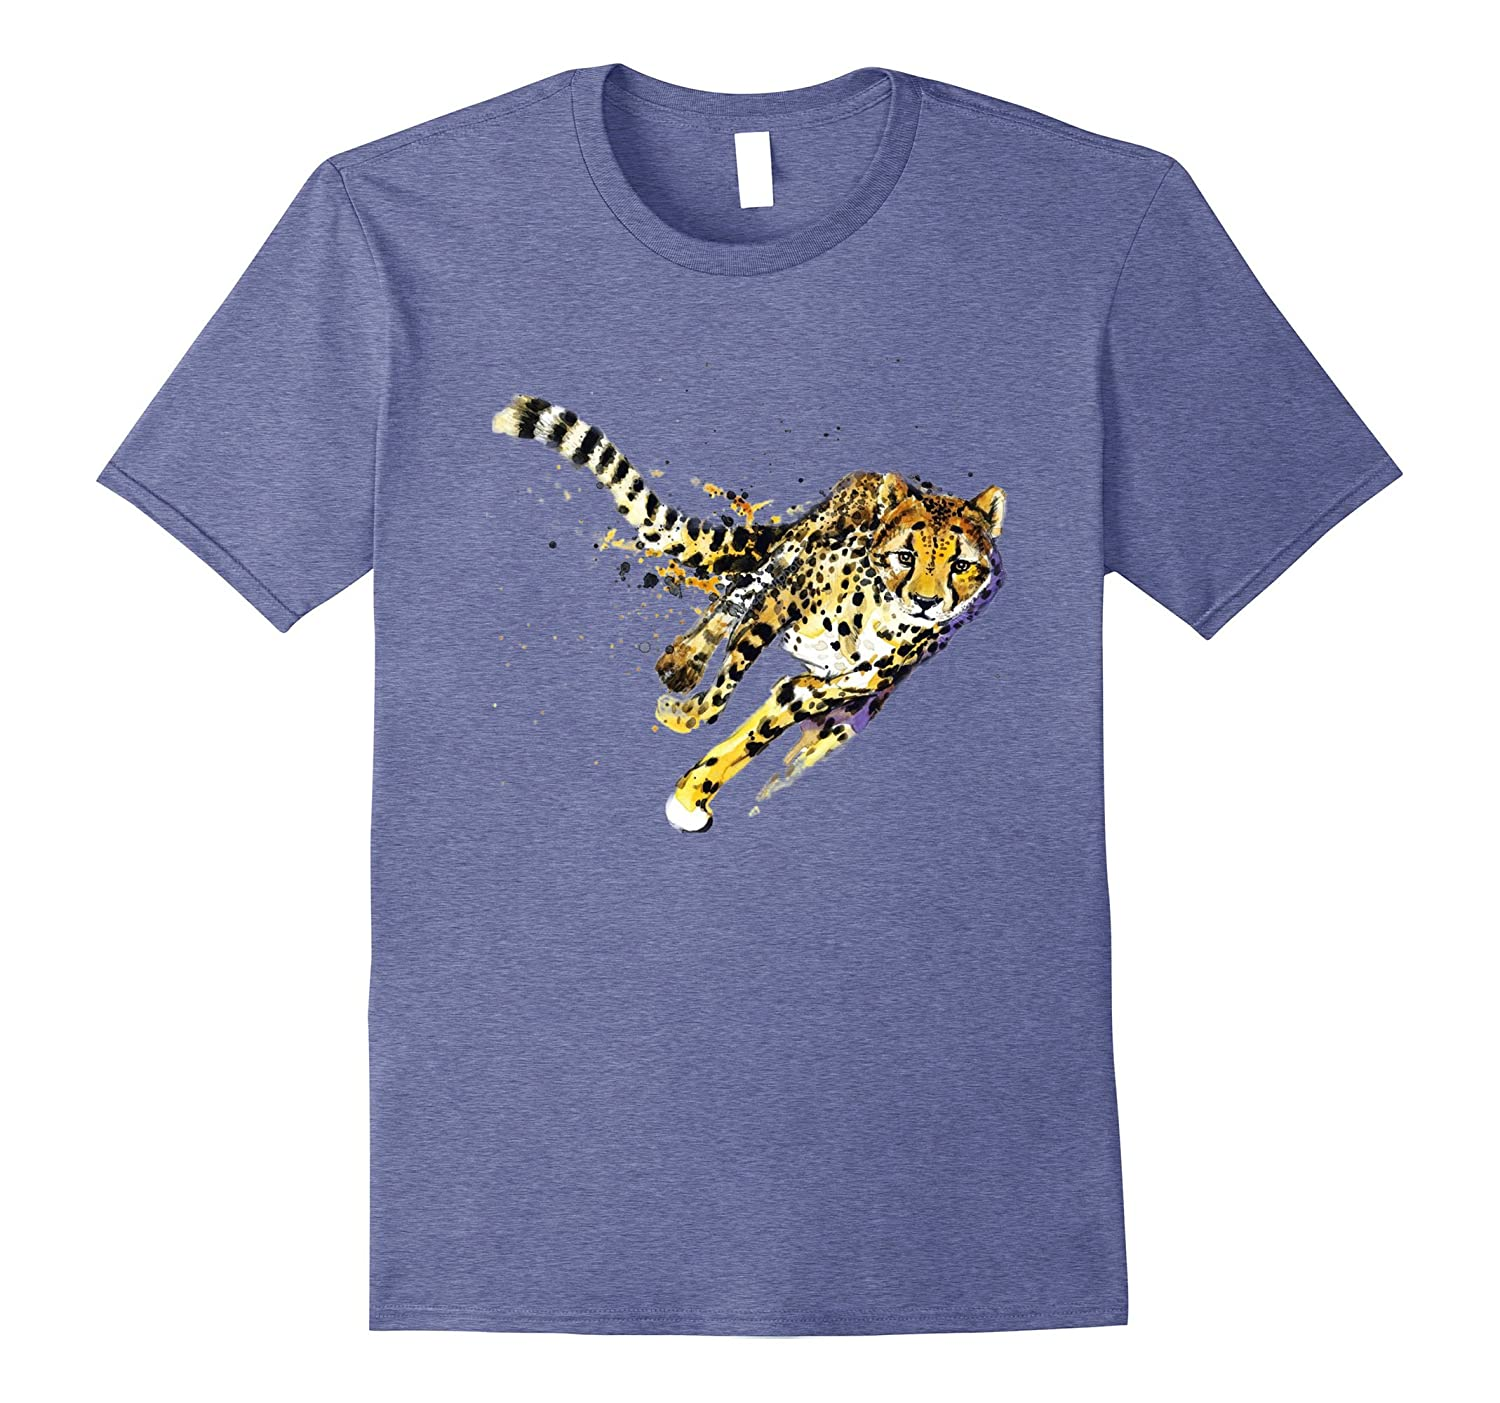 classic e a taken itm shirt xke drive t single type mens shirts of variation jaguar out for